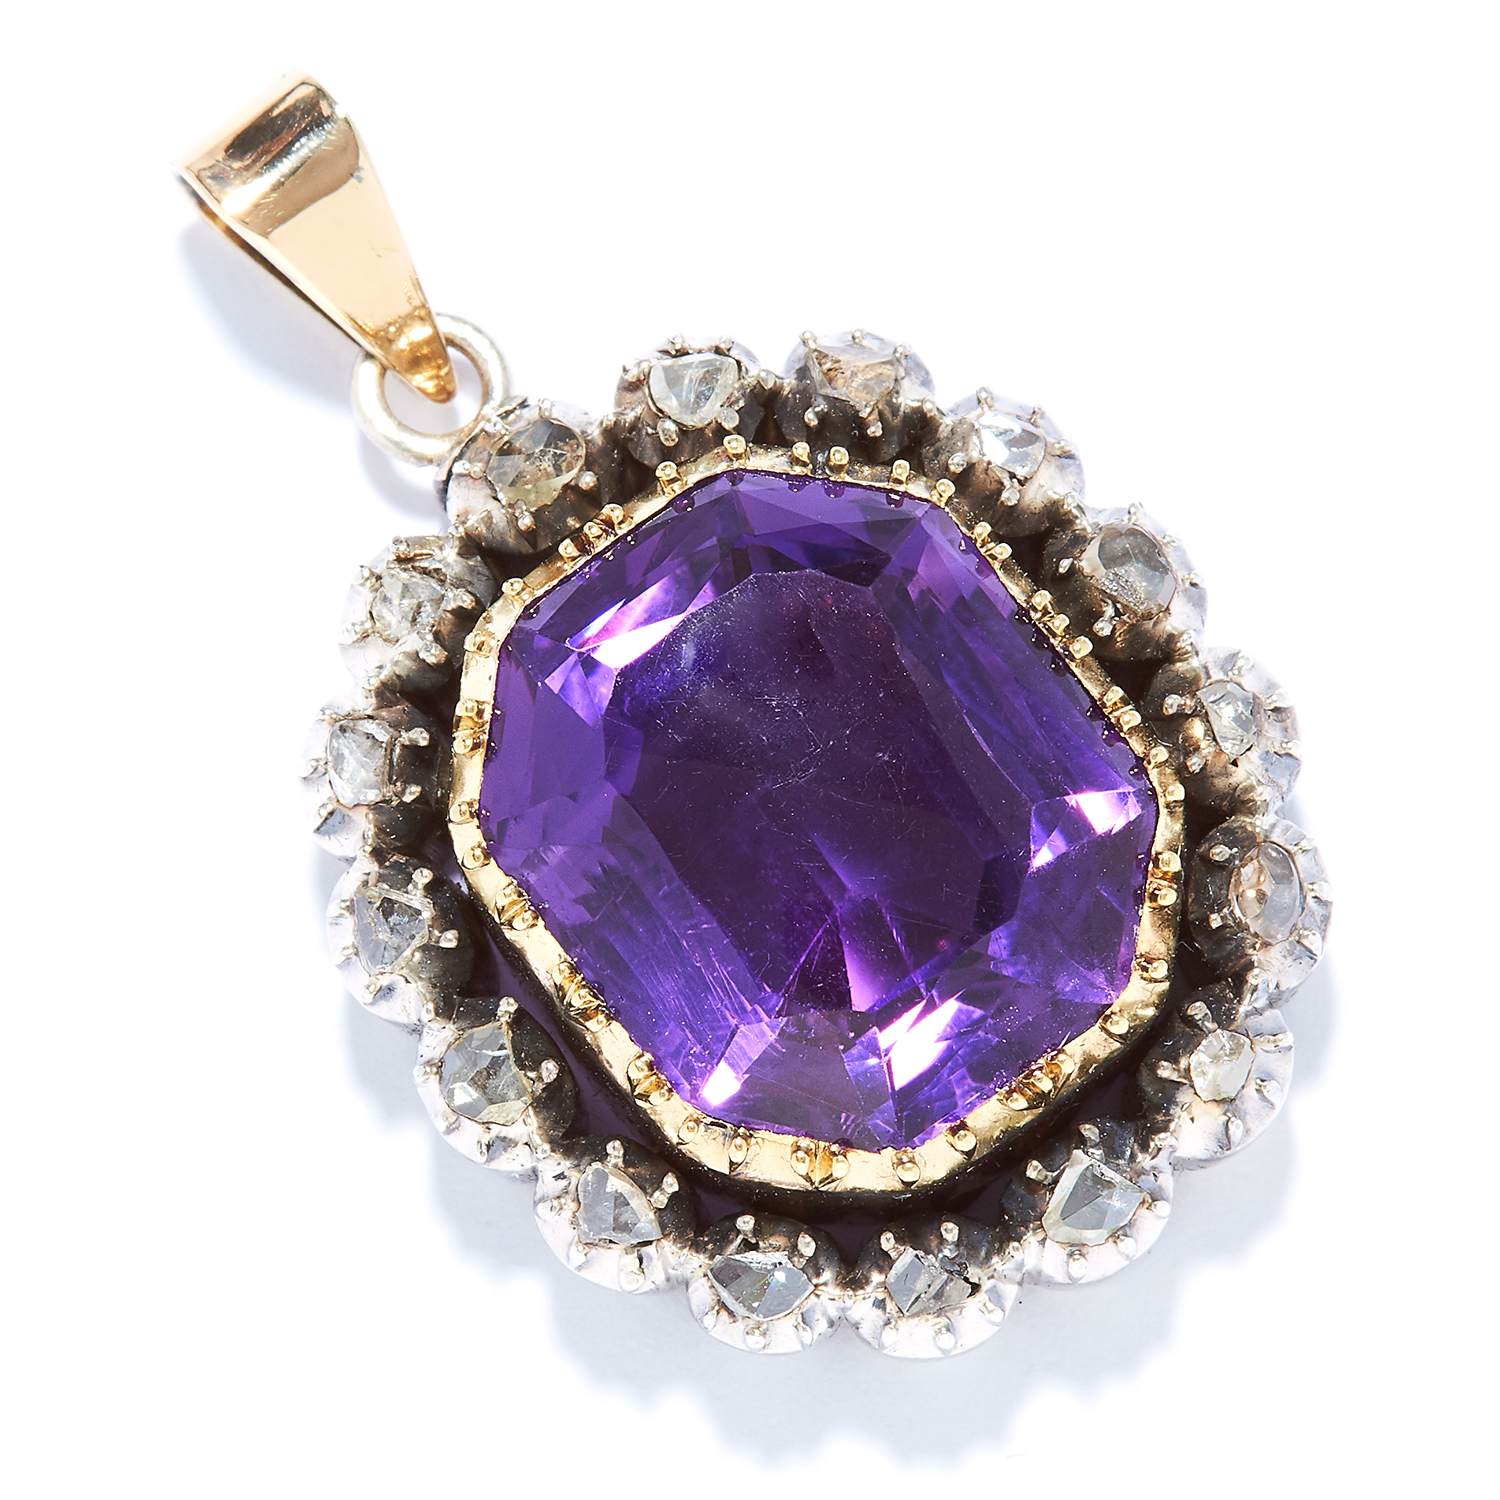 ANTIQUE AMETHYST AND DIAMOND PENDANT in gold, set with an emerald cut amethyst and rose cut